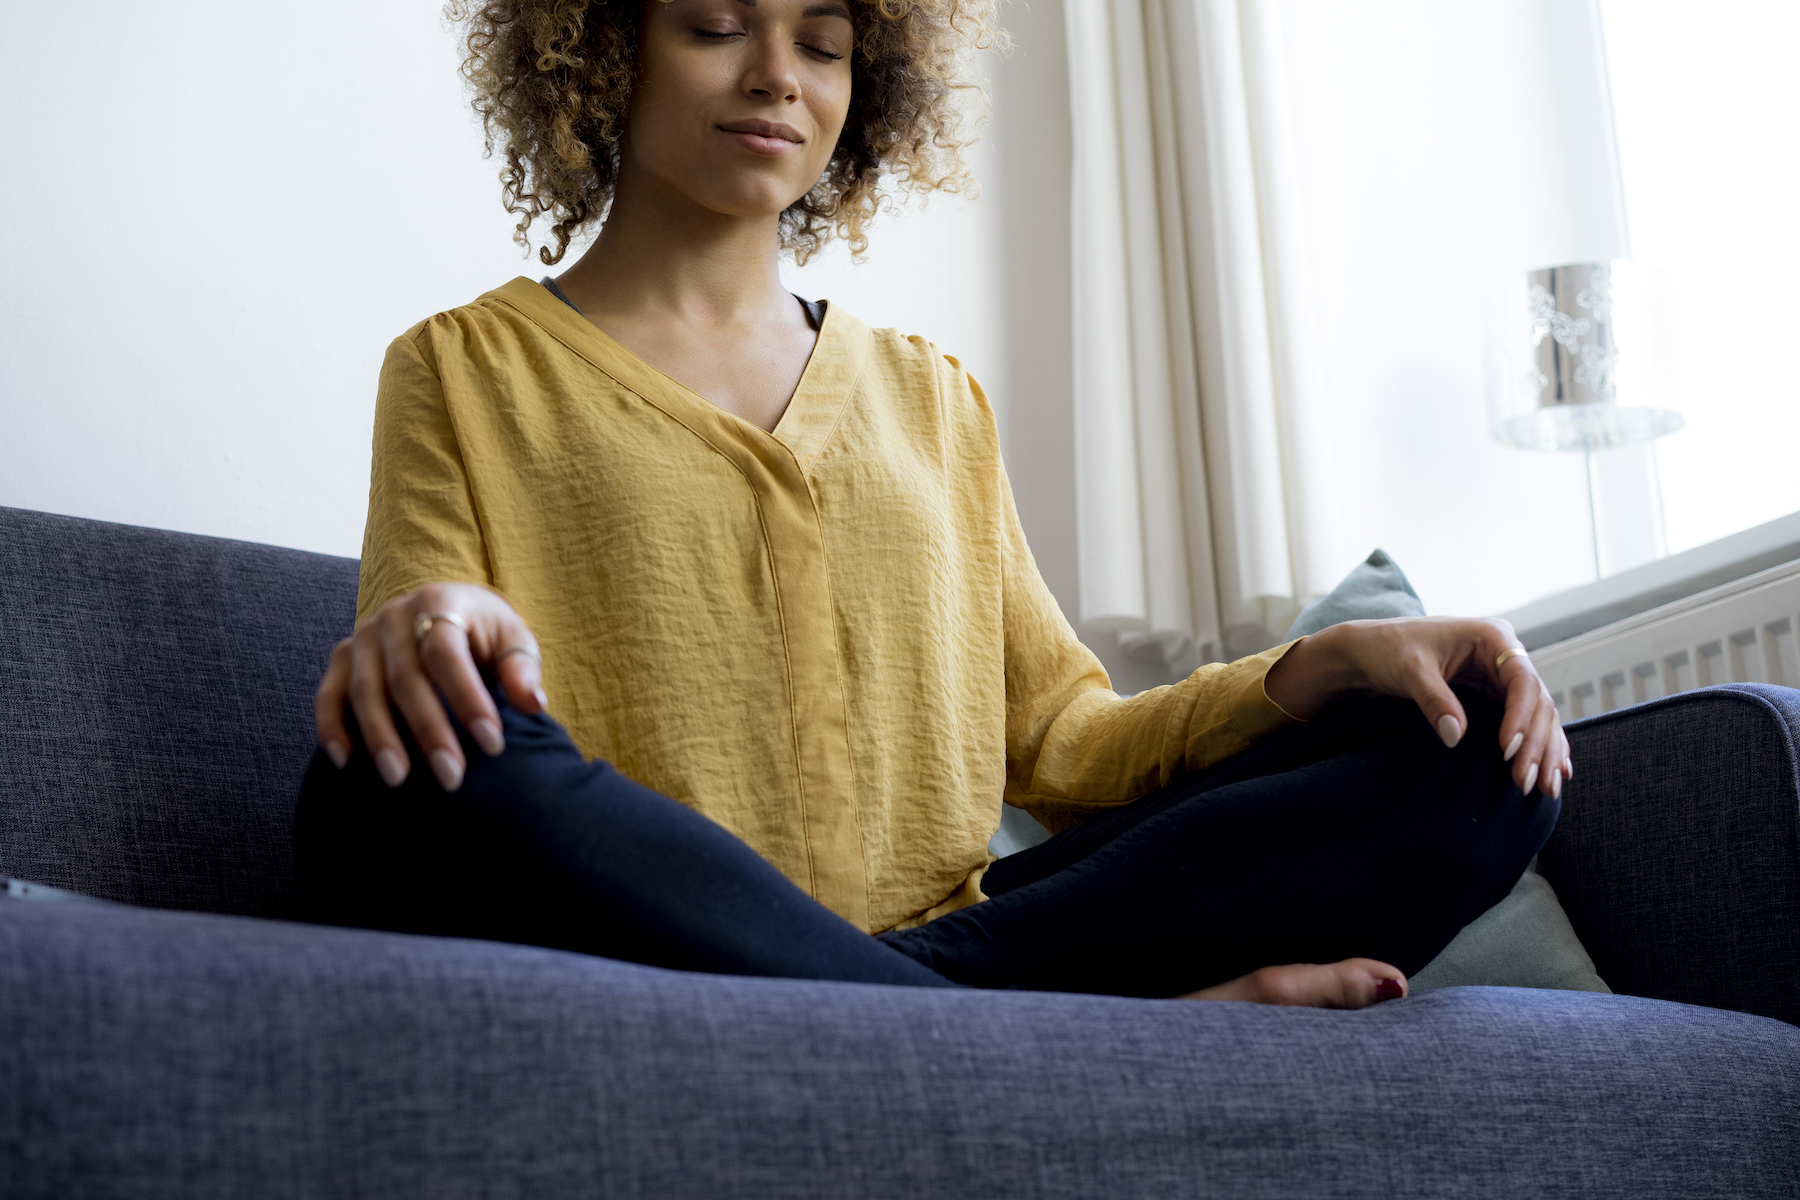 5-Minute Meditations and Breathing Exercises for When Things Get Stressful